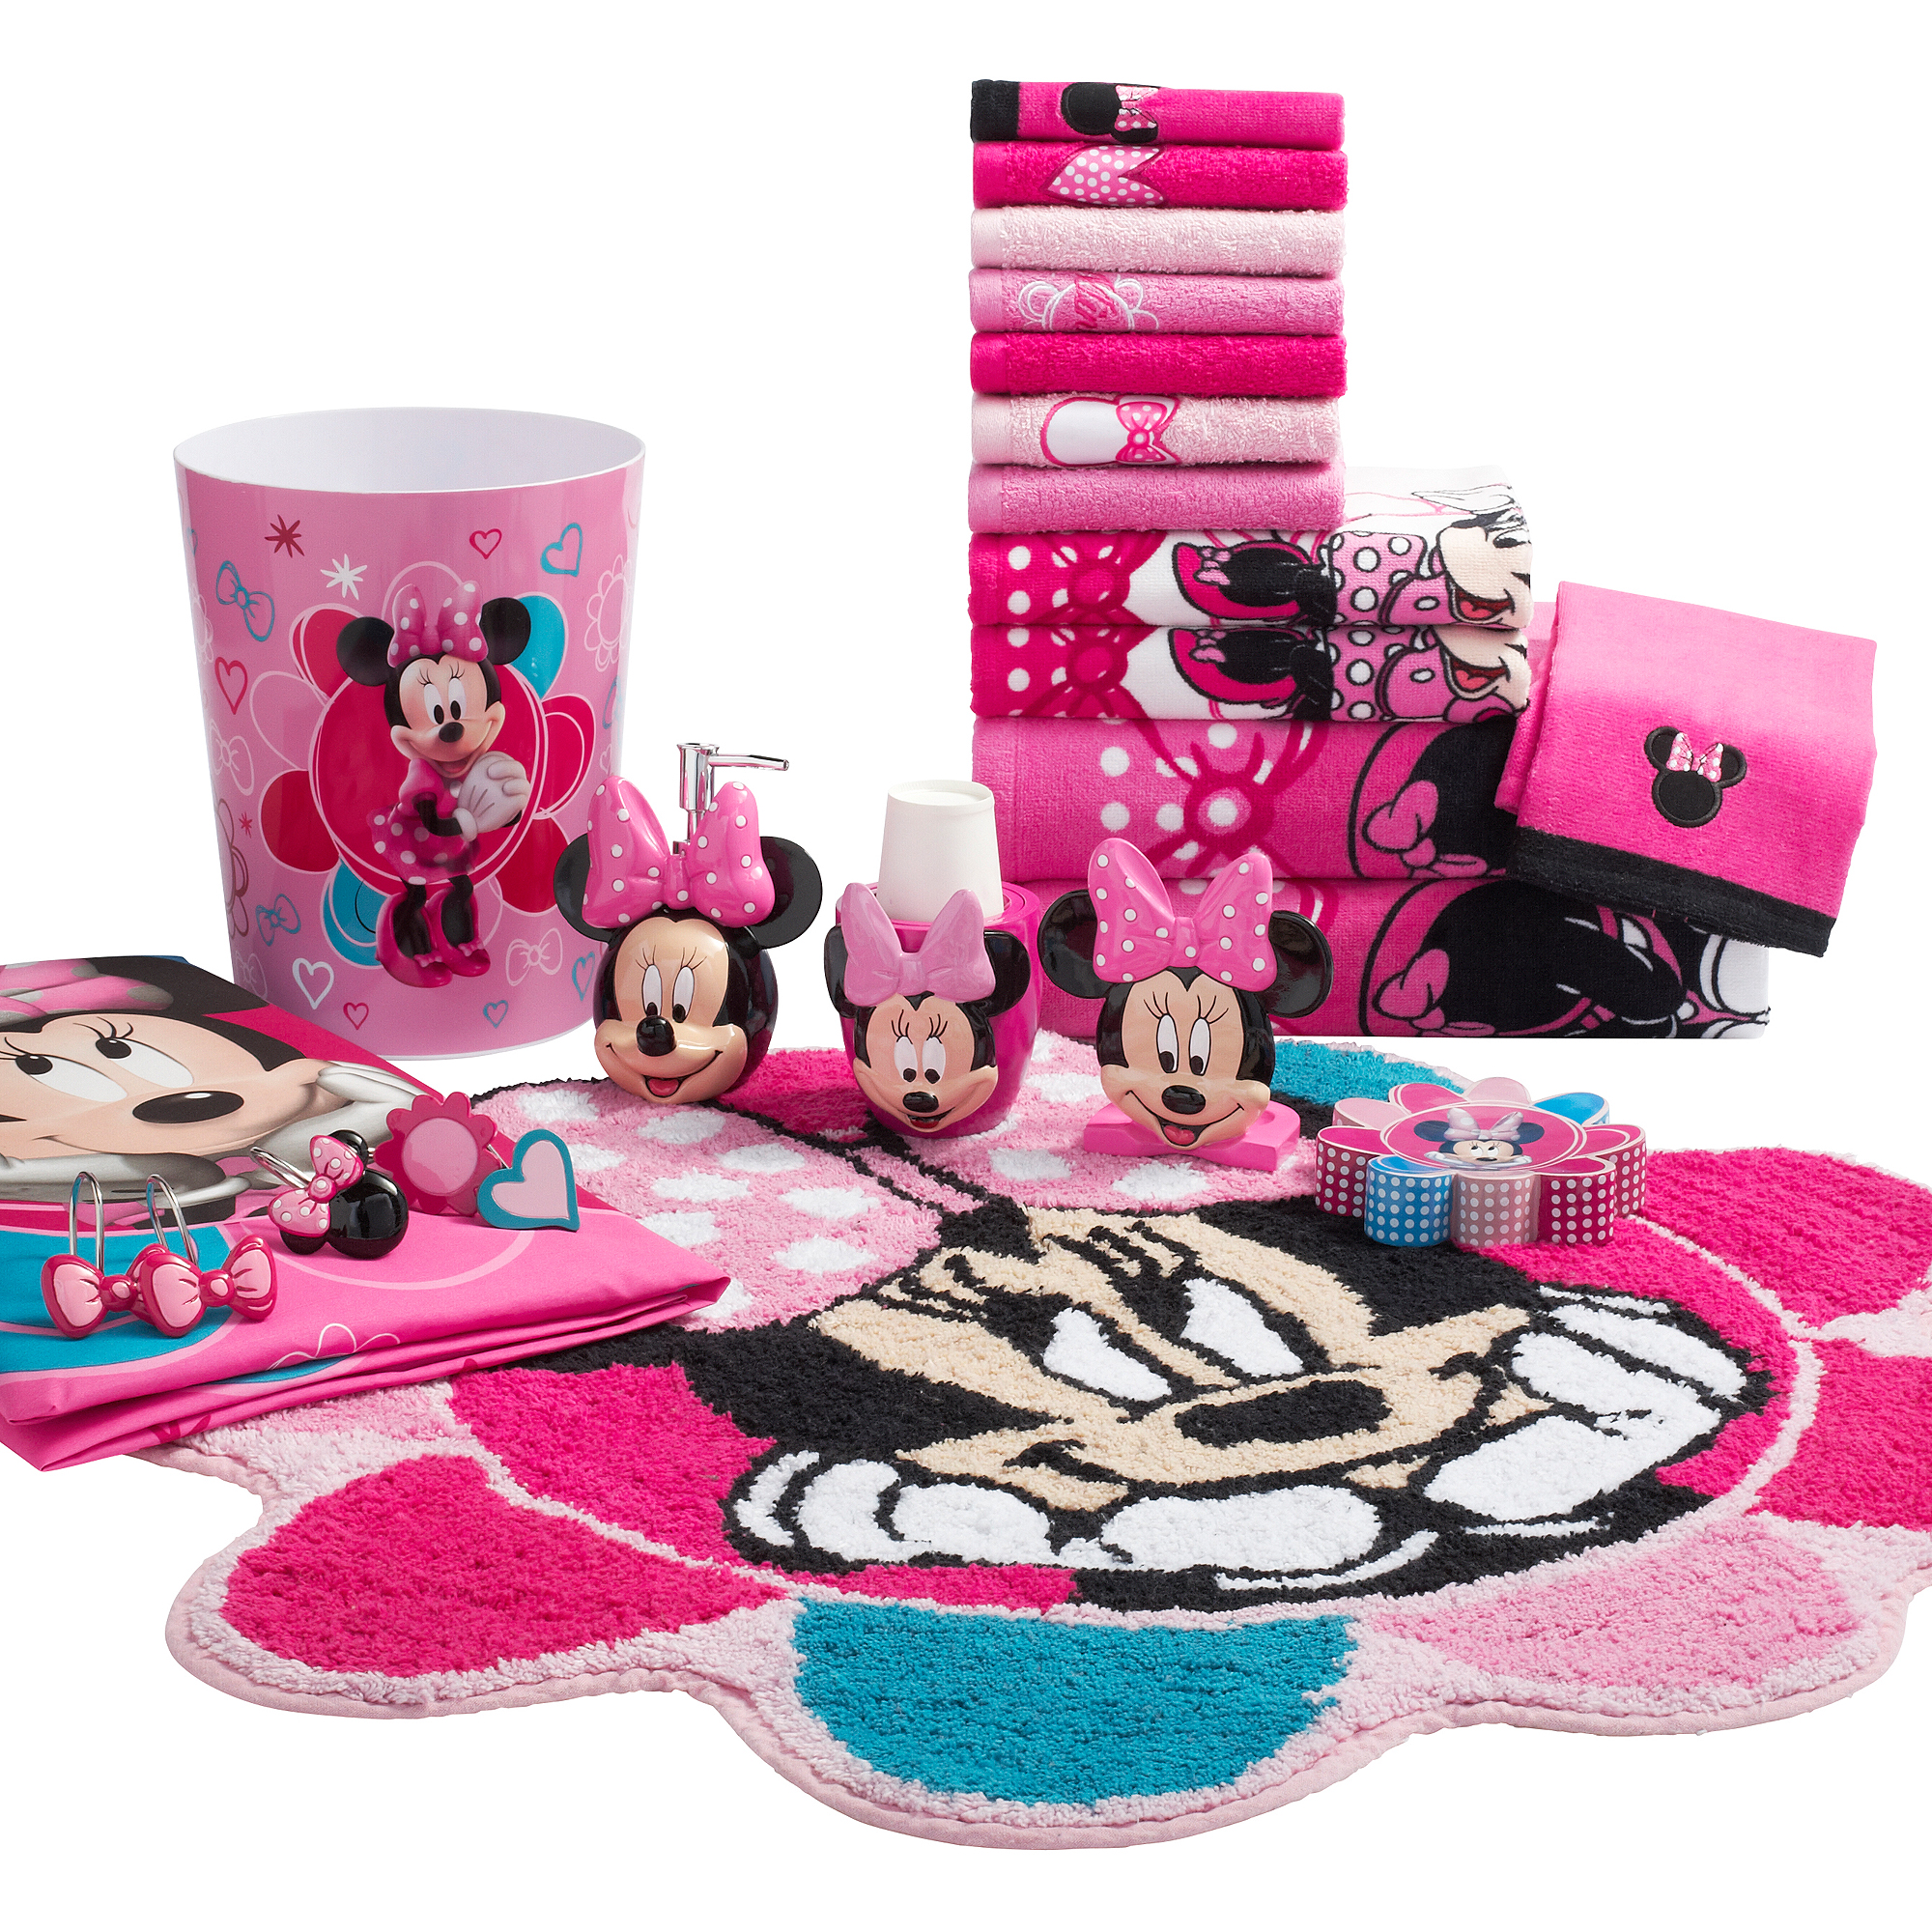 Kids Bathroom Walmartcom - Mickey mouse bathroom accessories